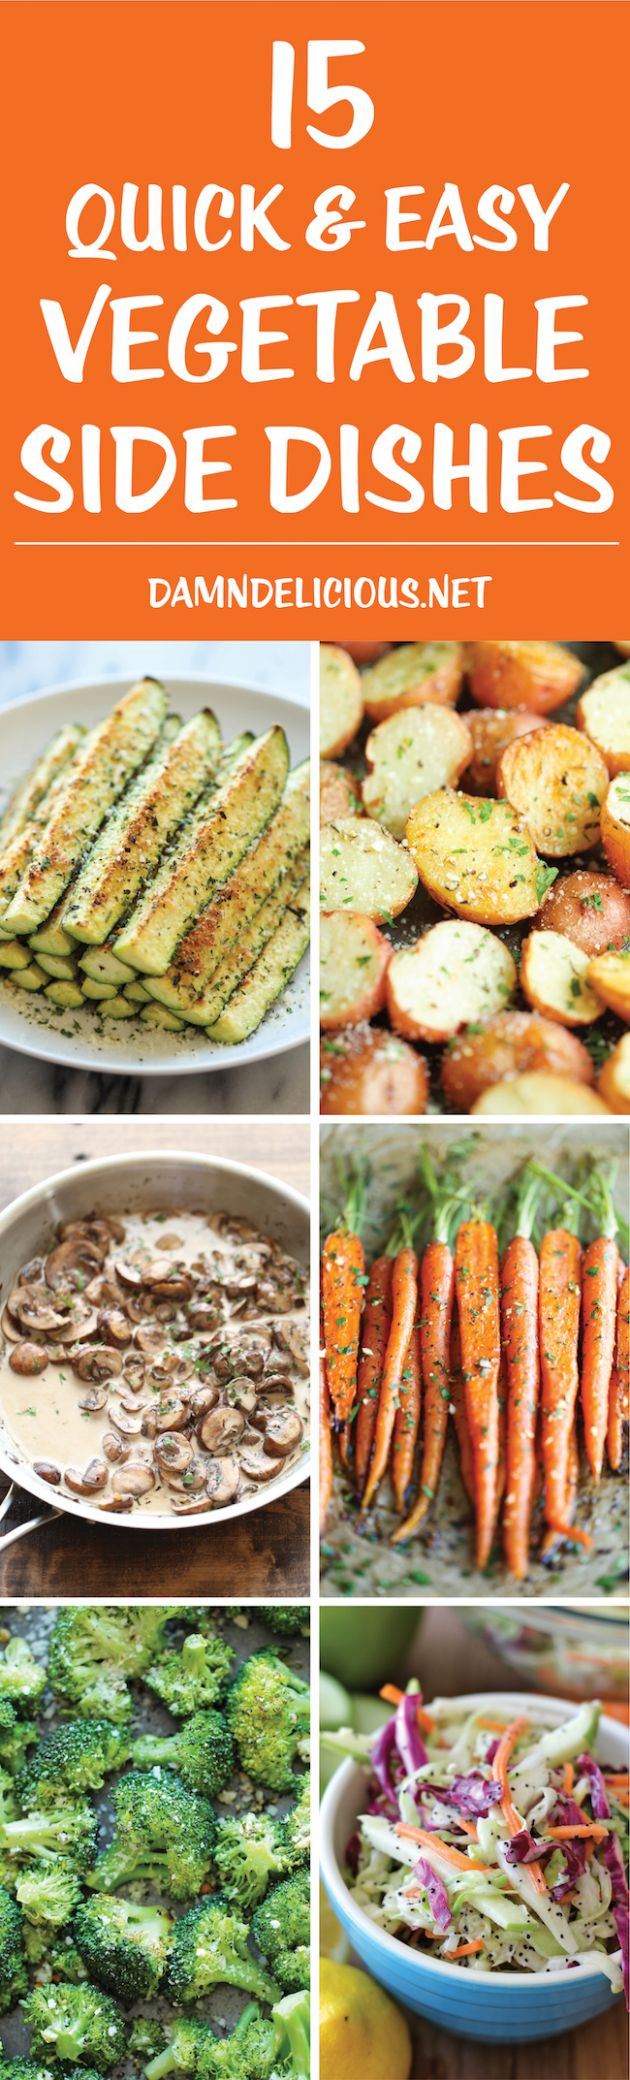 10 Quick and Easy Vegetable Side Dishes - Damn Delicious